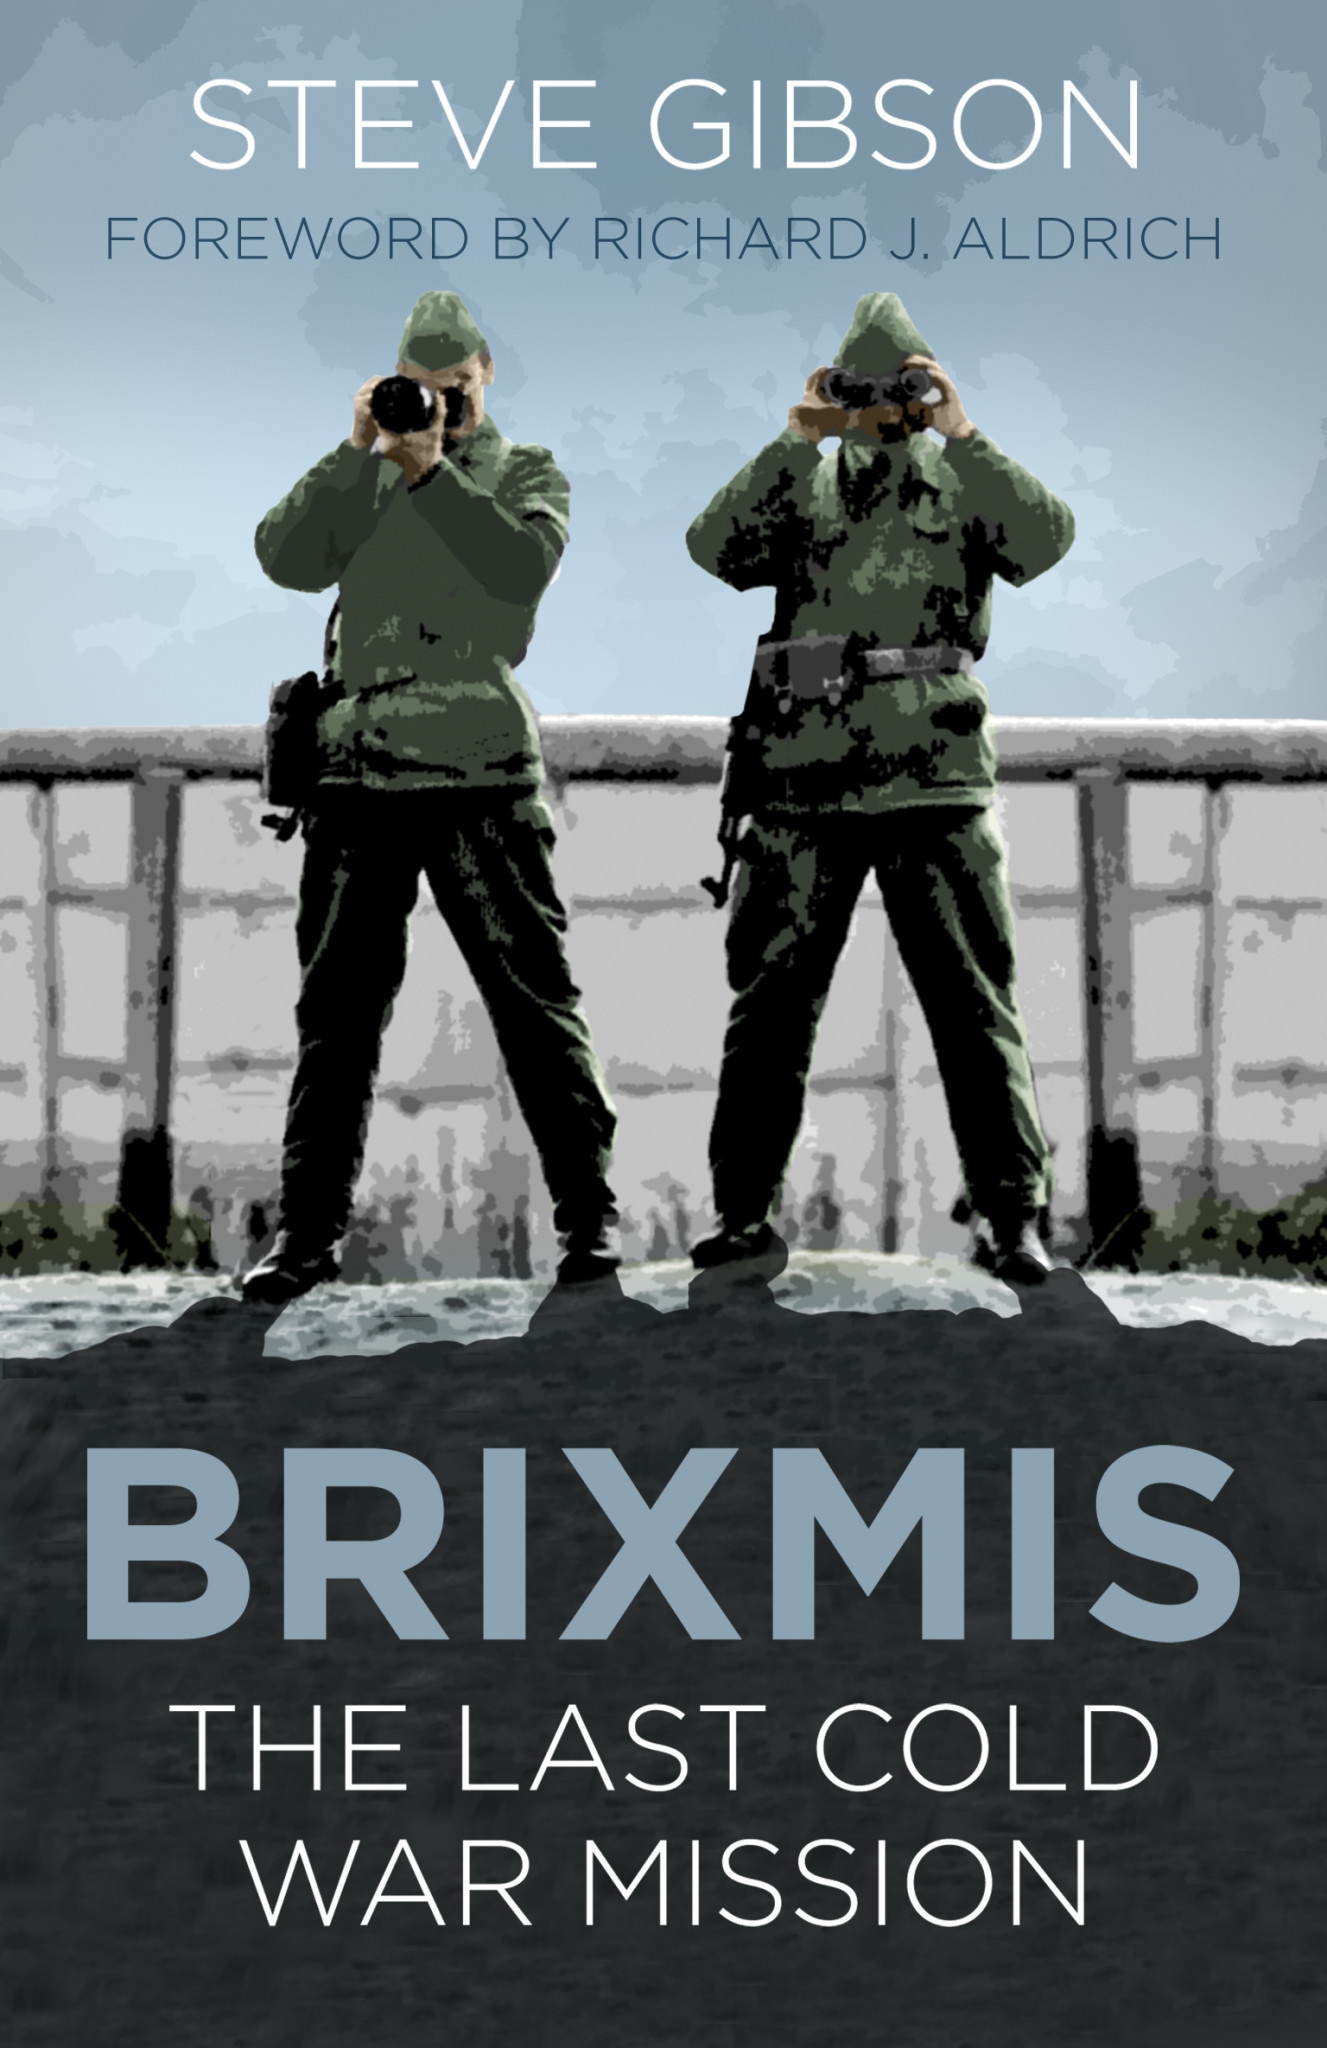 BRIXMIS Author Steve Gibson